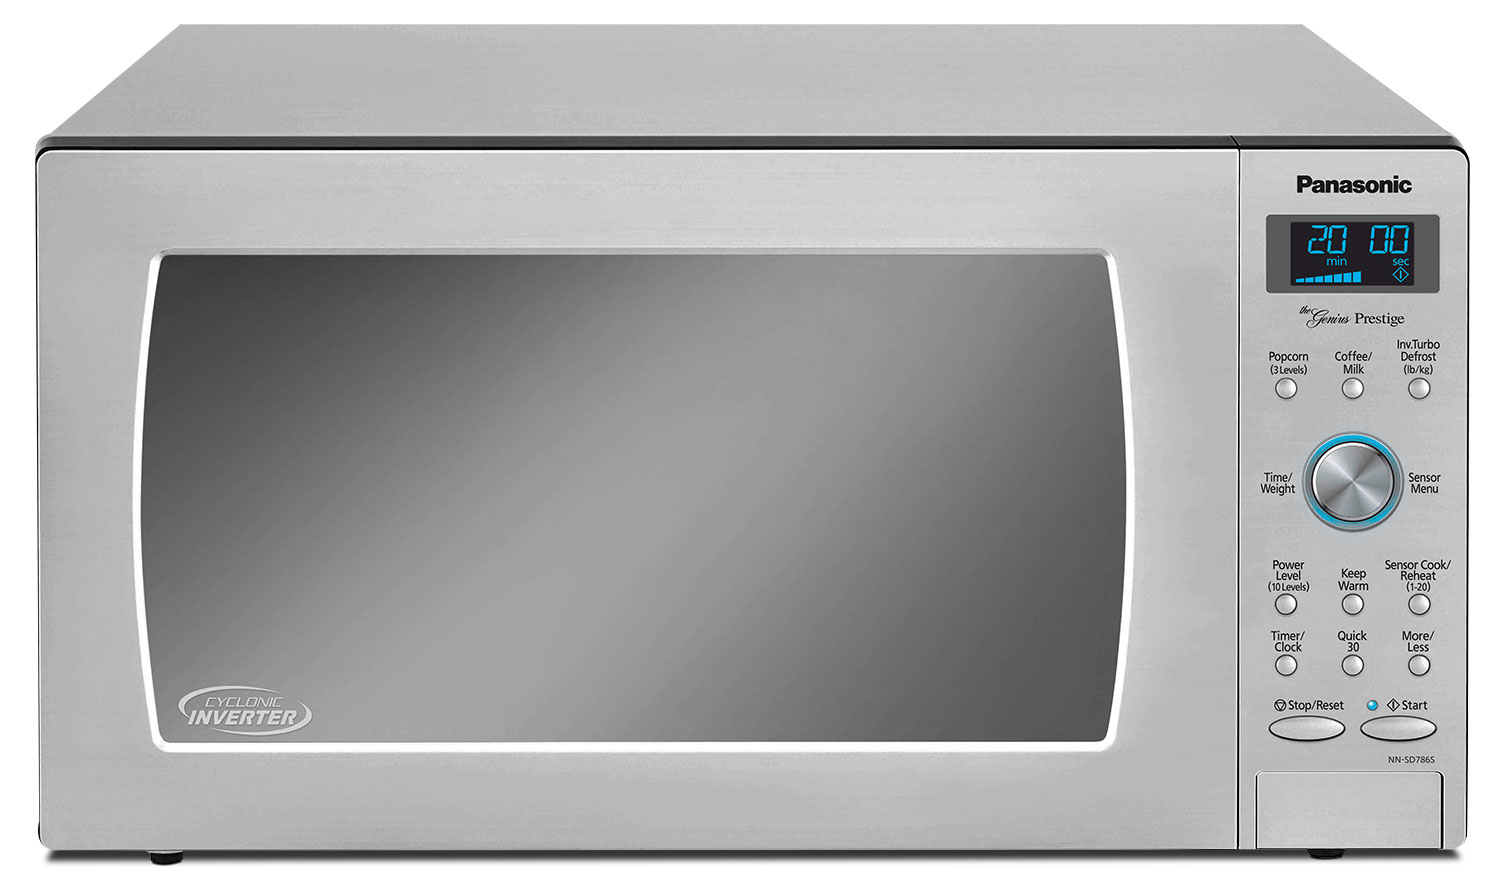 Cooking Products - Panasonic 1.6 Cu. Ft. Countertop Microwave – NNSD786S